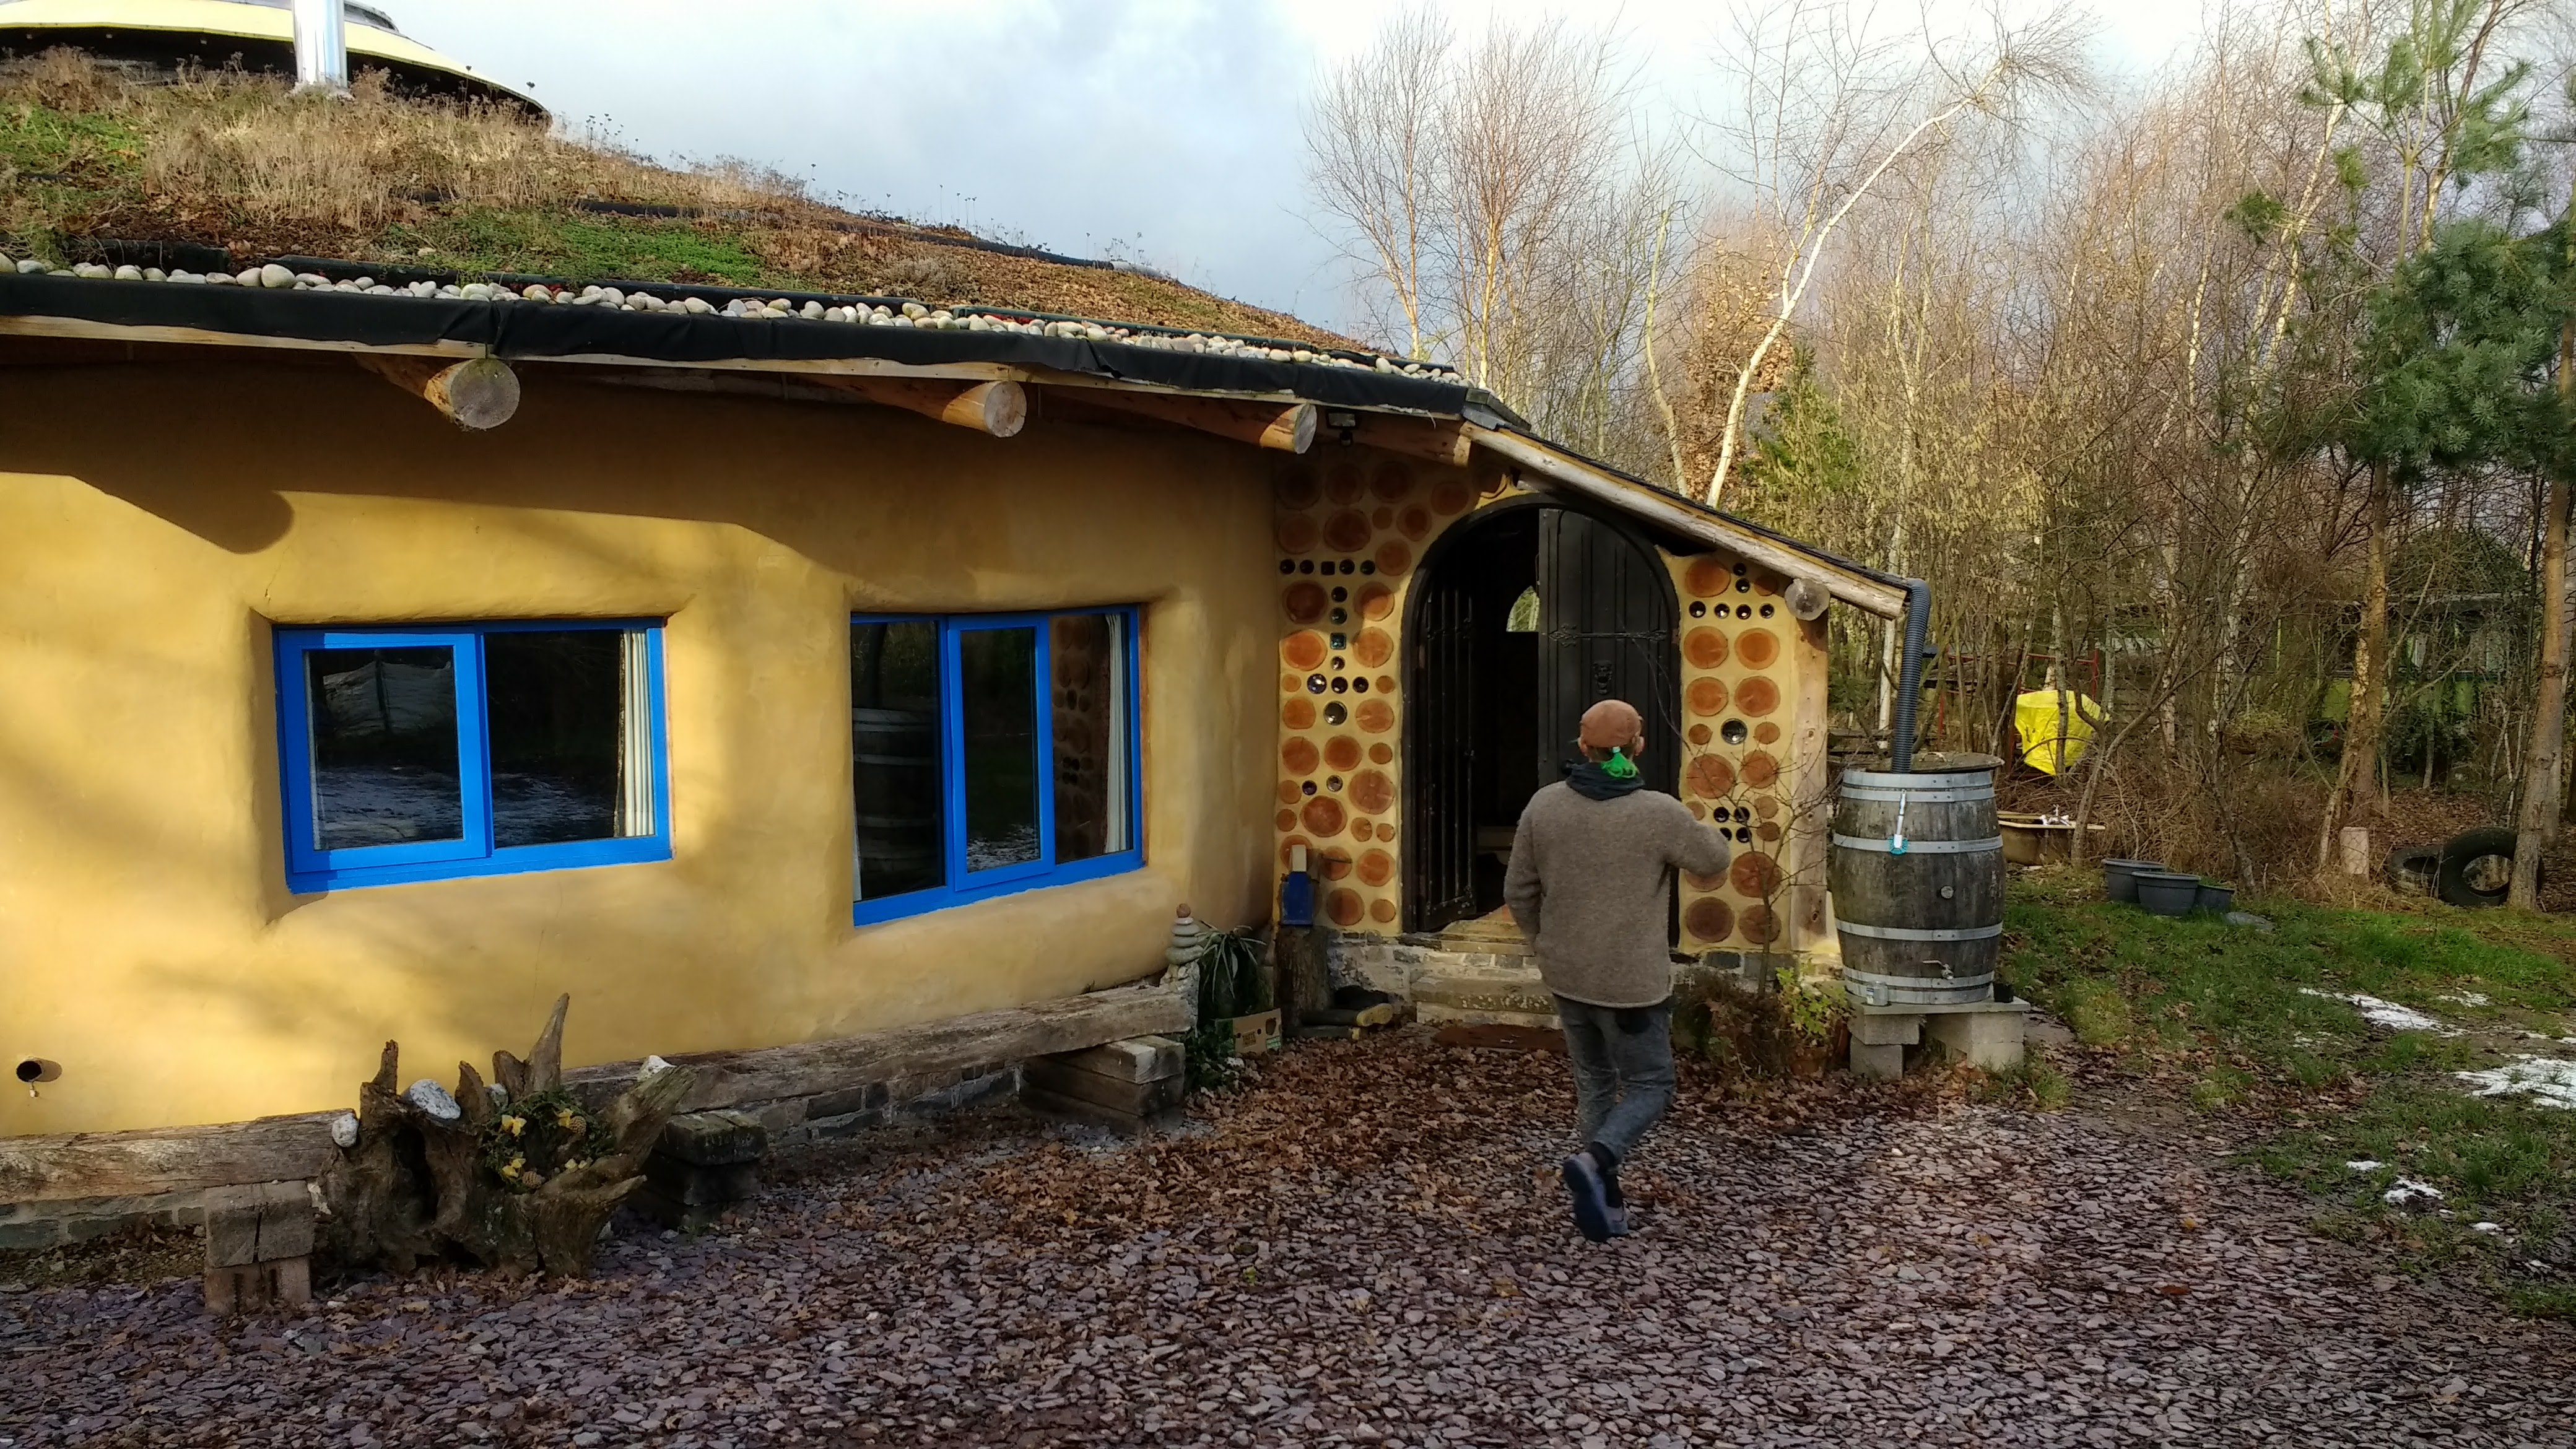 Eco-Loo compost toilet in a strawbale roundhouse